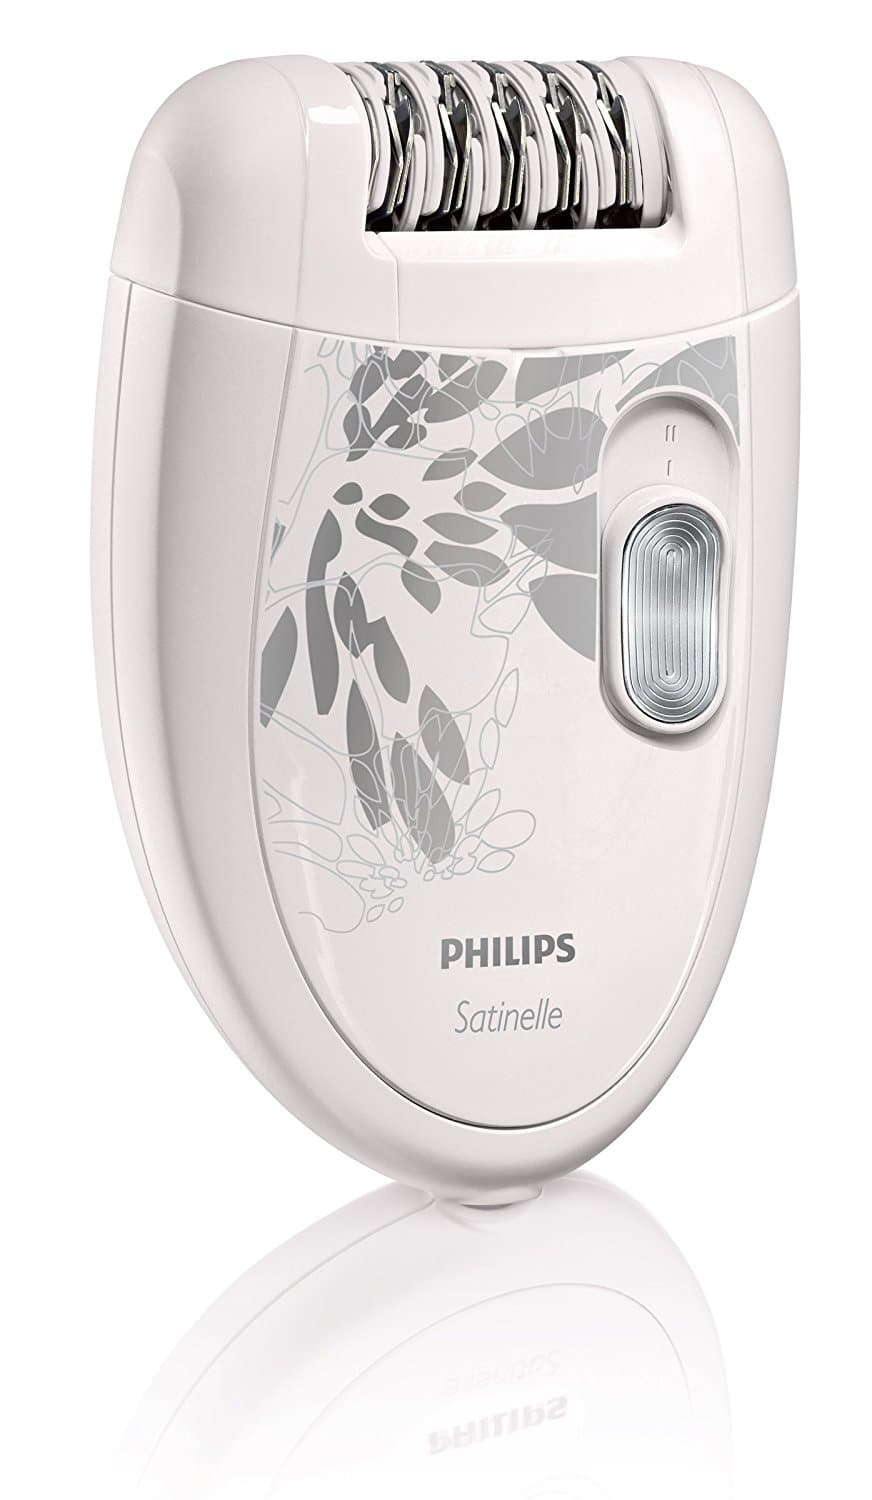 philips satinelle epilator review